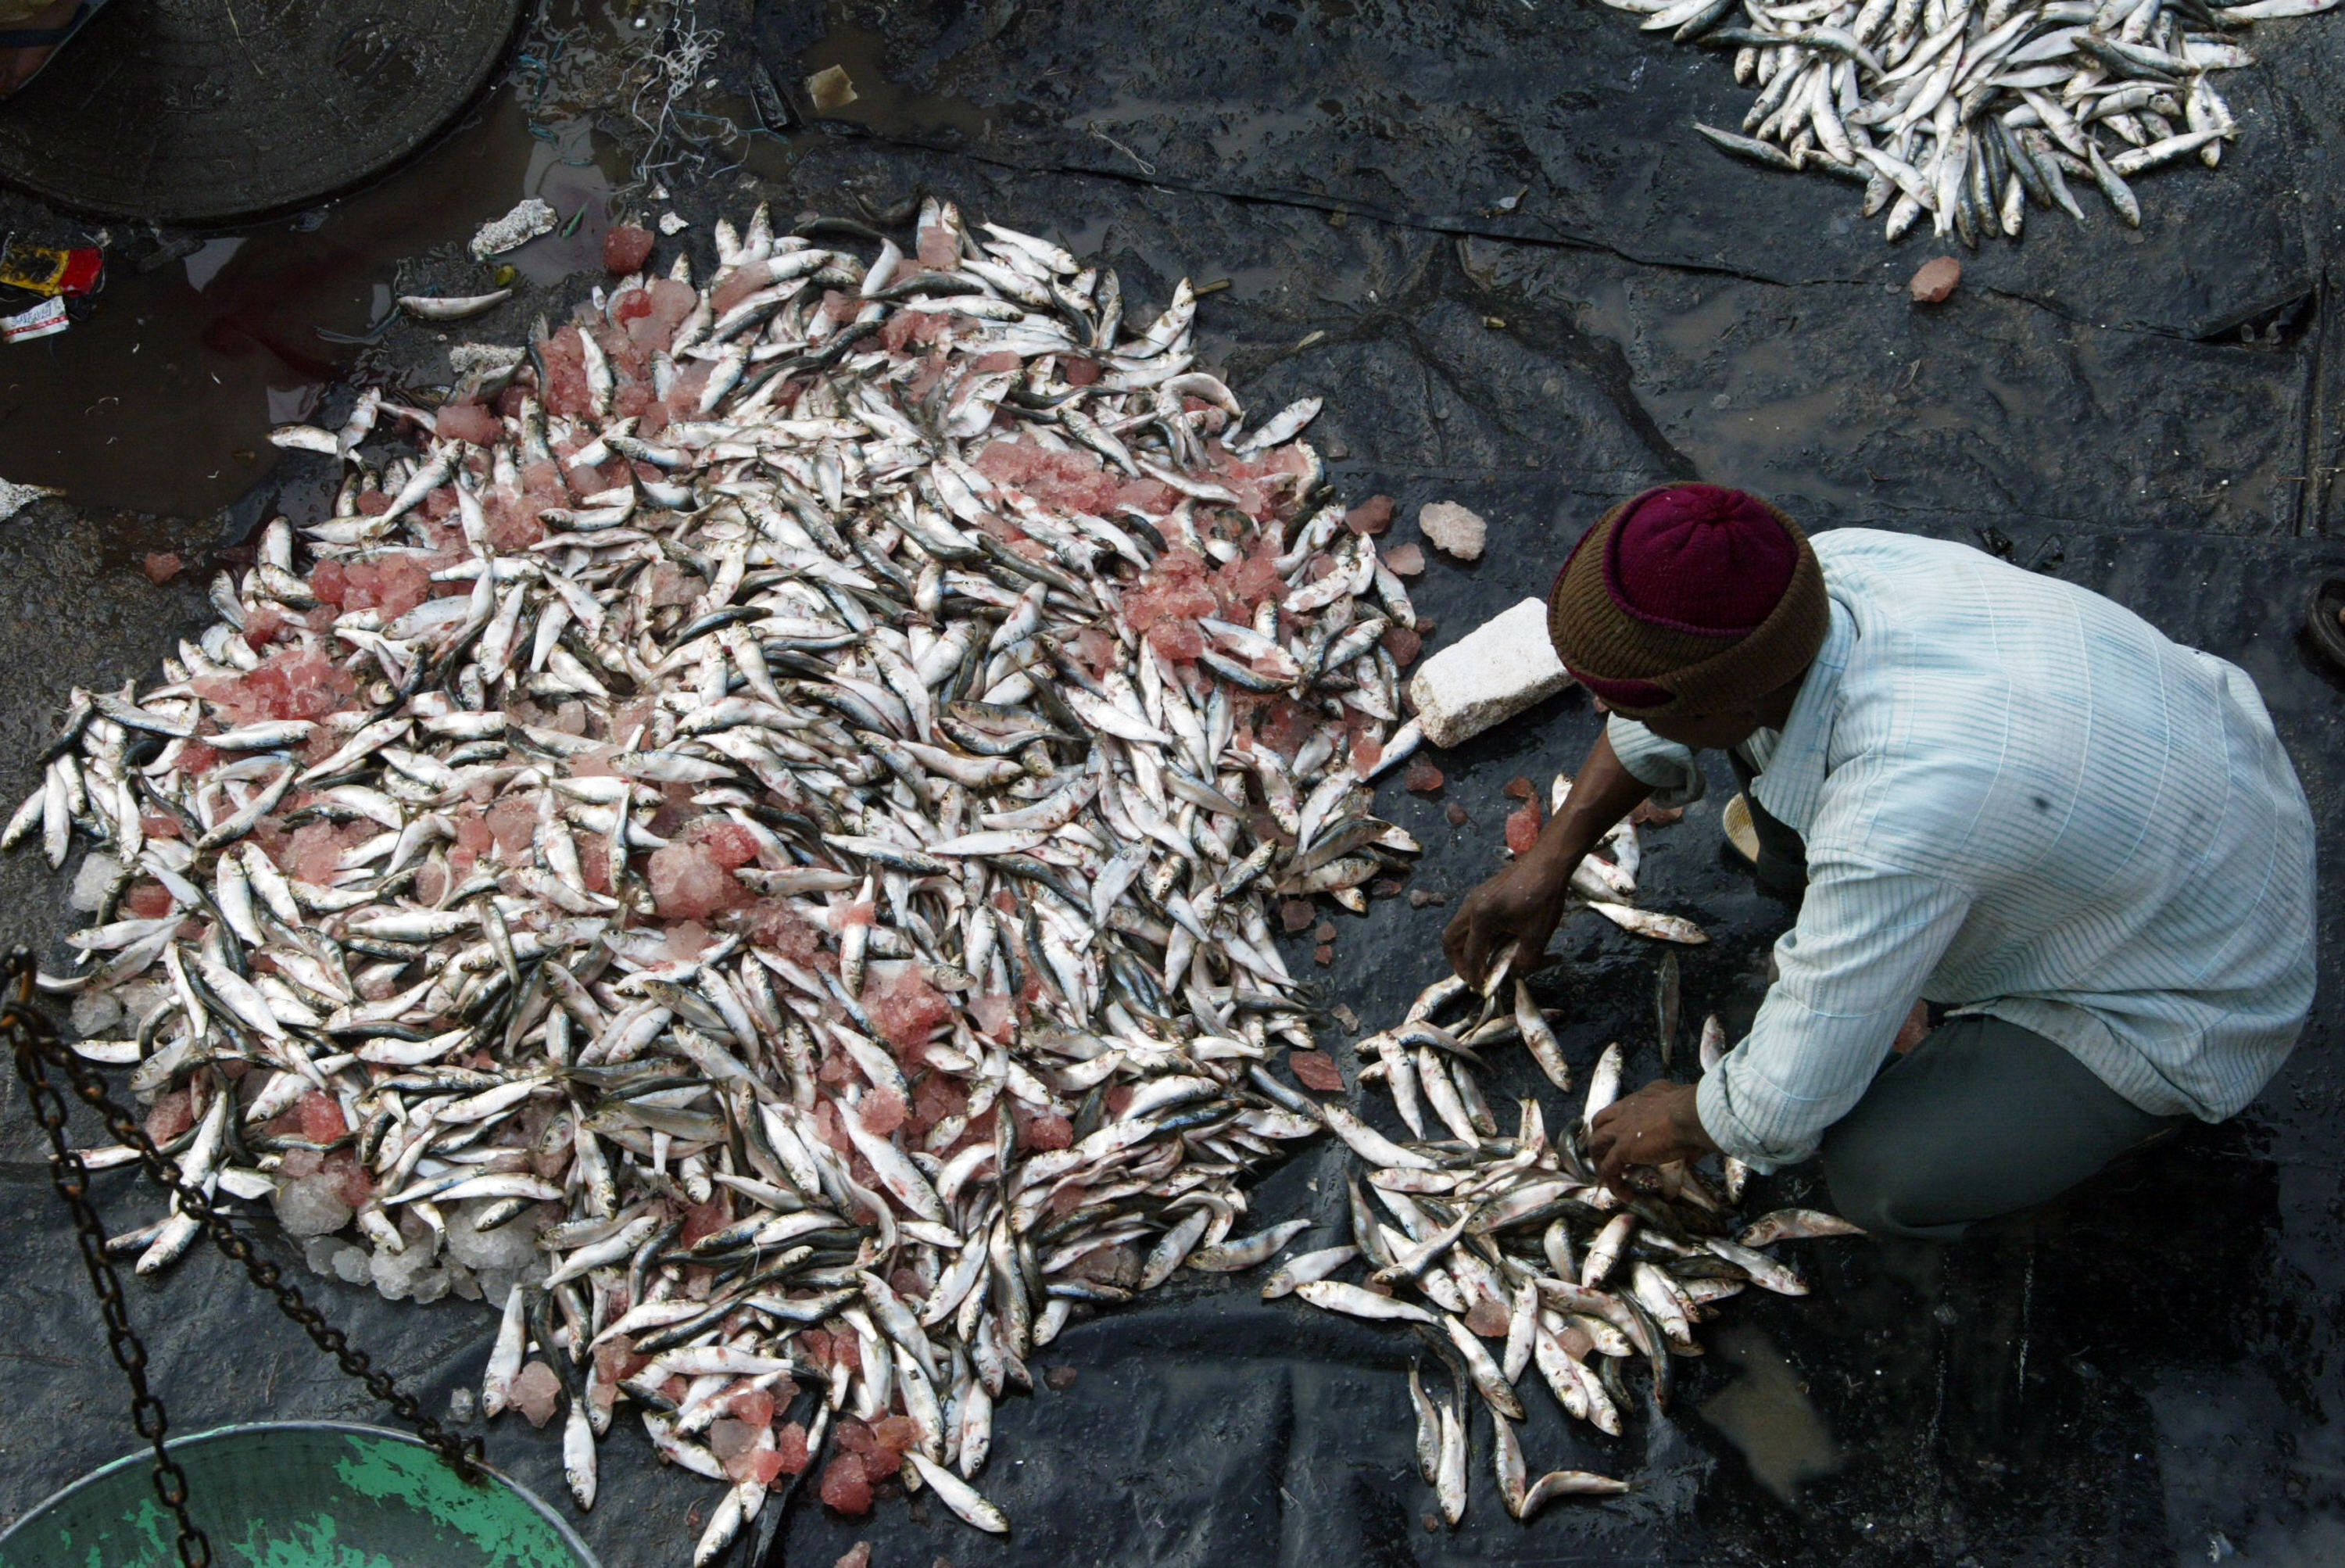 Domestic fish markets and fish landing centres lack even the basics – water, proper drainage, crushed ice, hygienic transportation boxes and other infrastructure – leading to large post-harvest losses. (Credit: Noah Seelam / AFP)